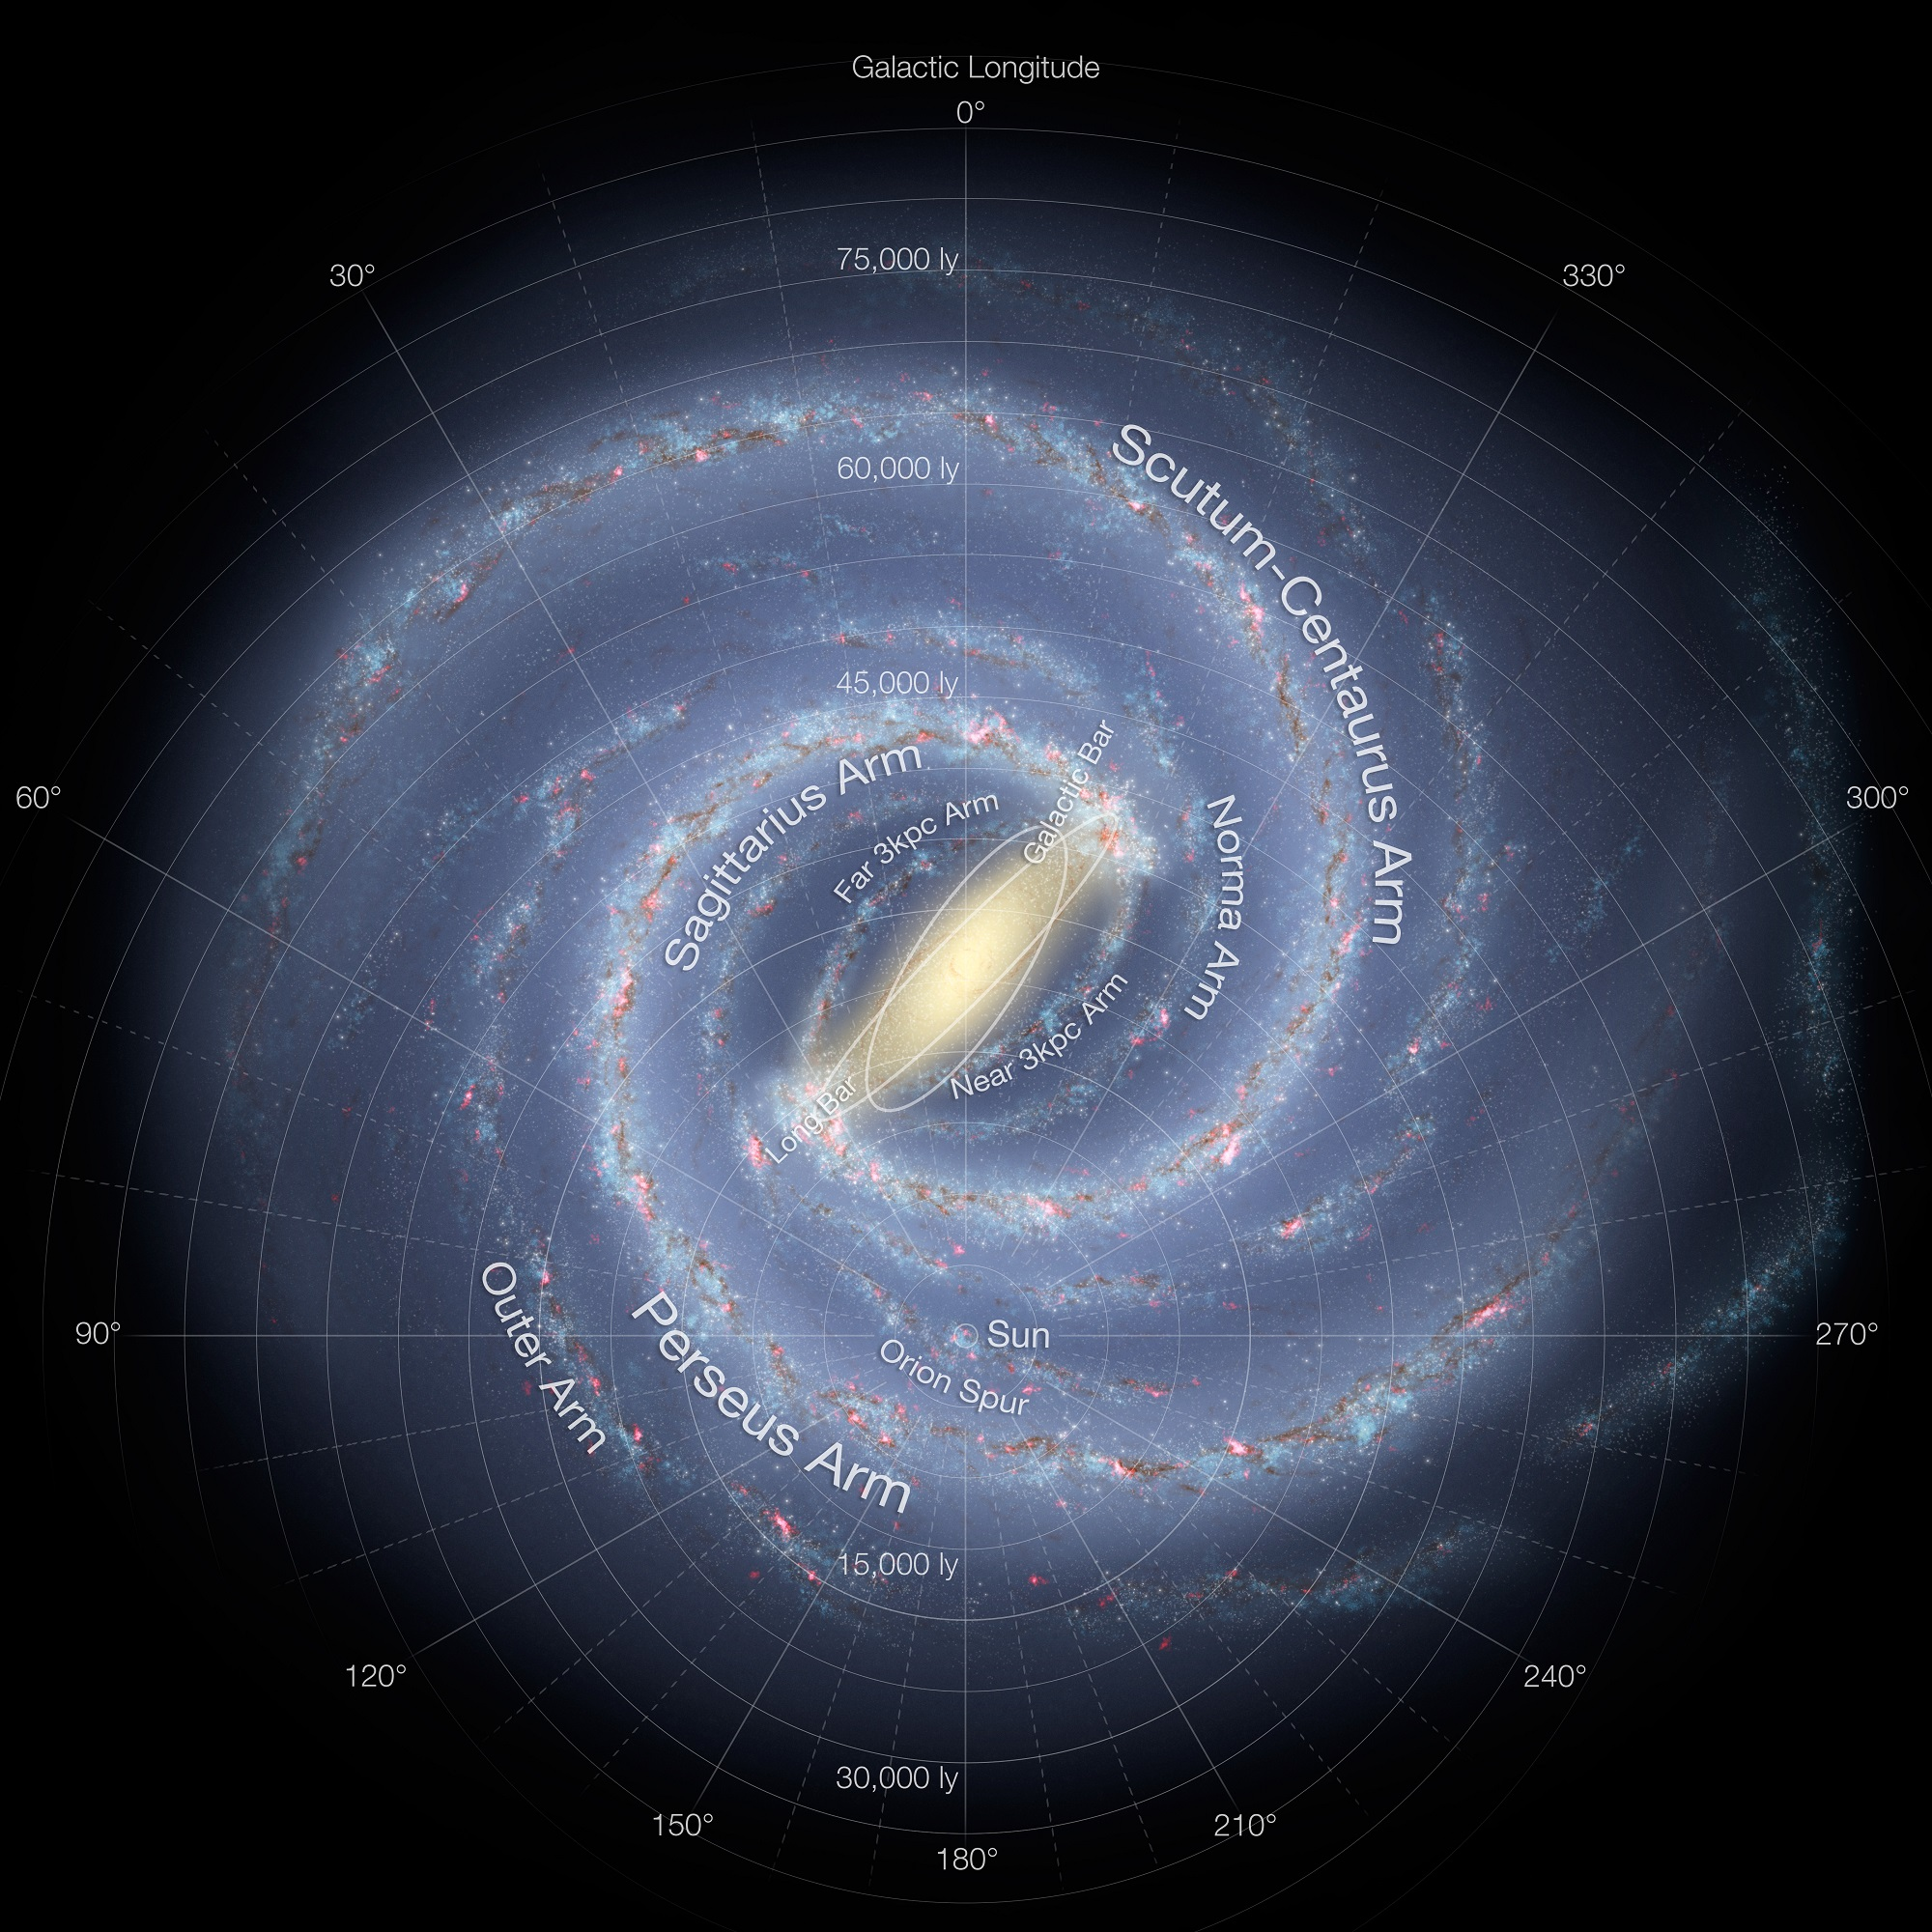 Artist's impression of the spiral structure of the Milky Way with two major stellar arms and a bar. - Image Credit: NASA/JPL-Caltech/ESO/R. Hurt